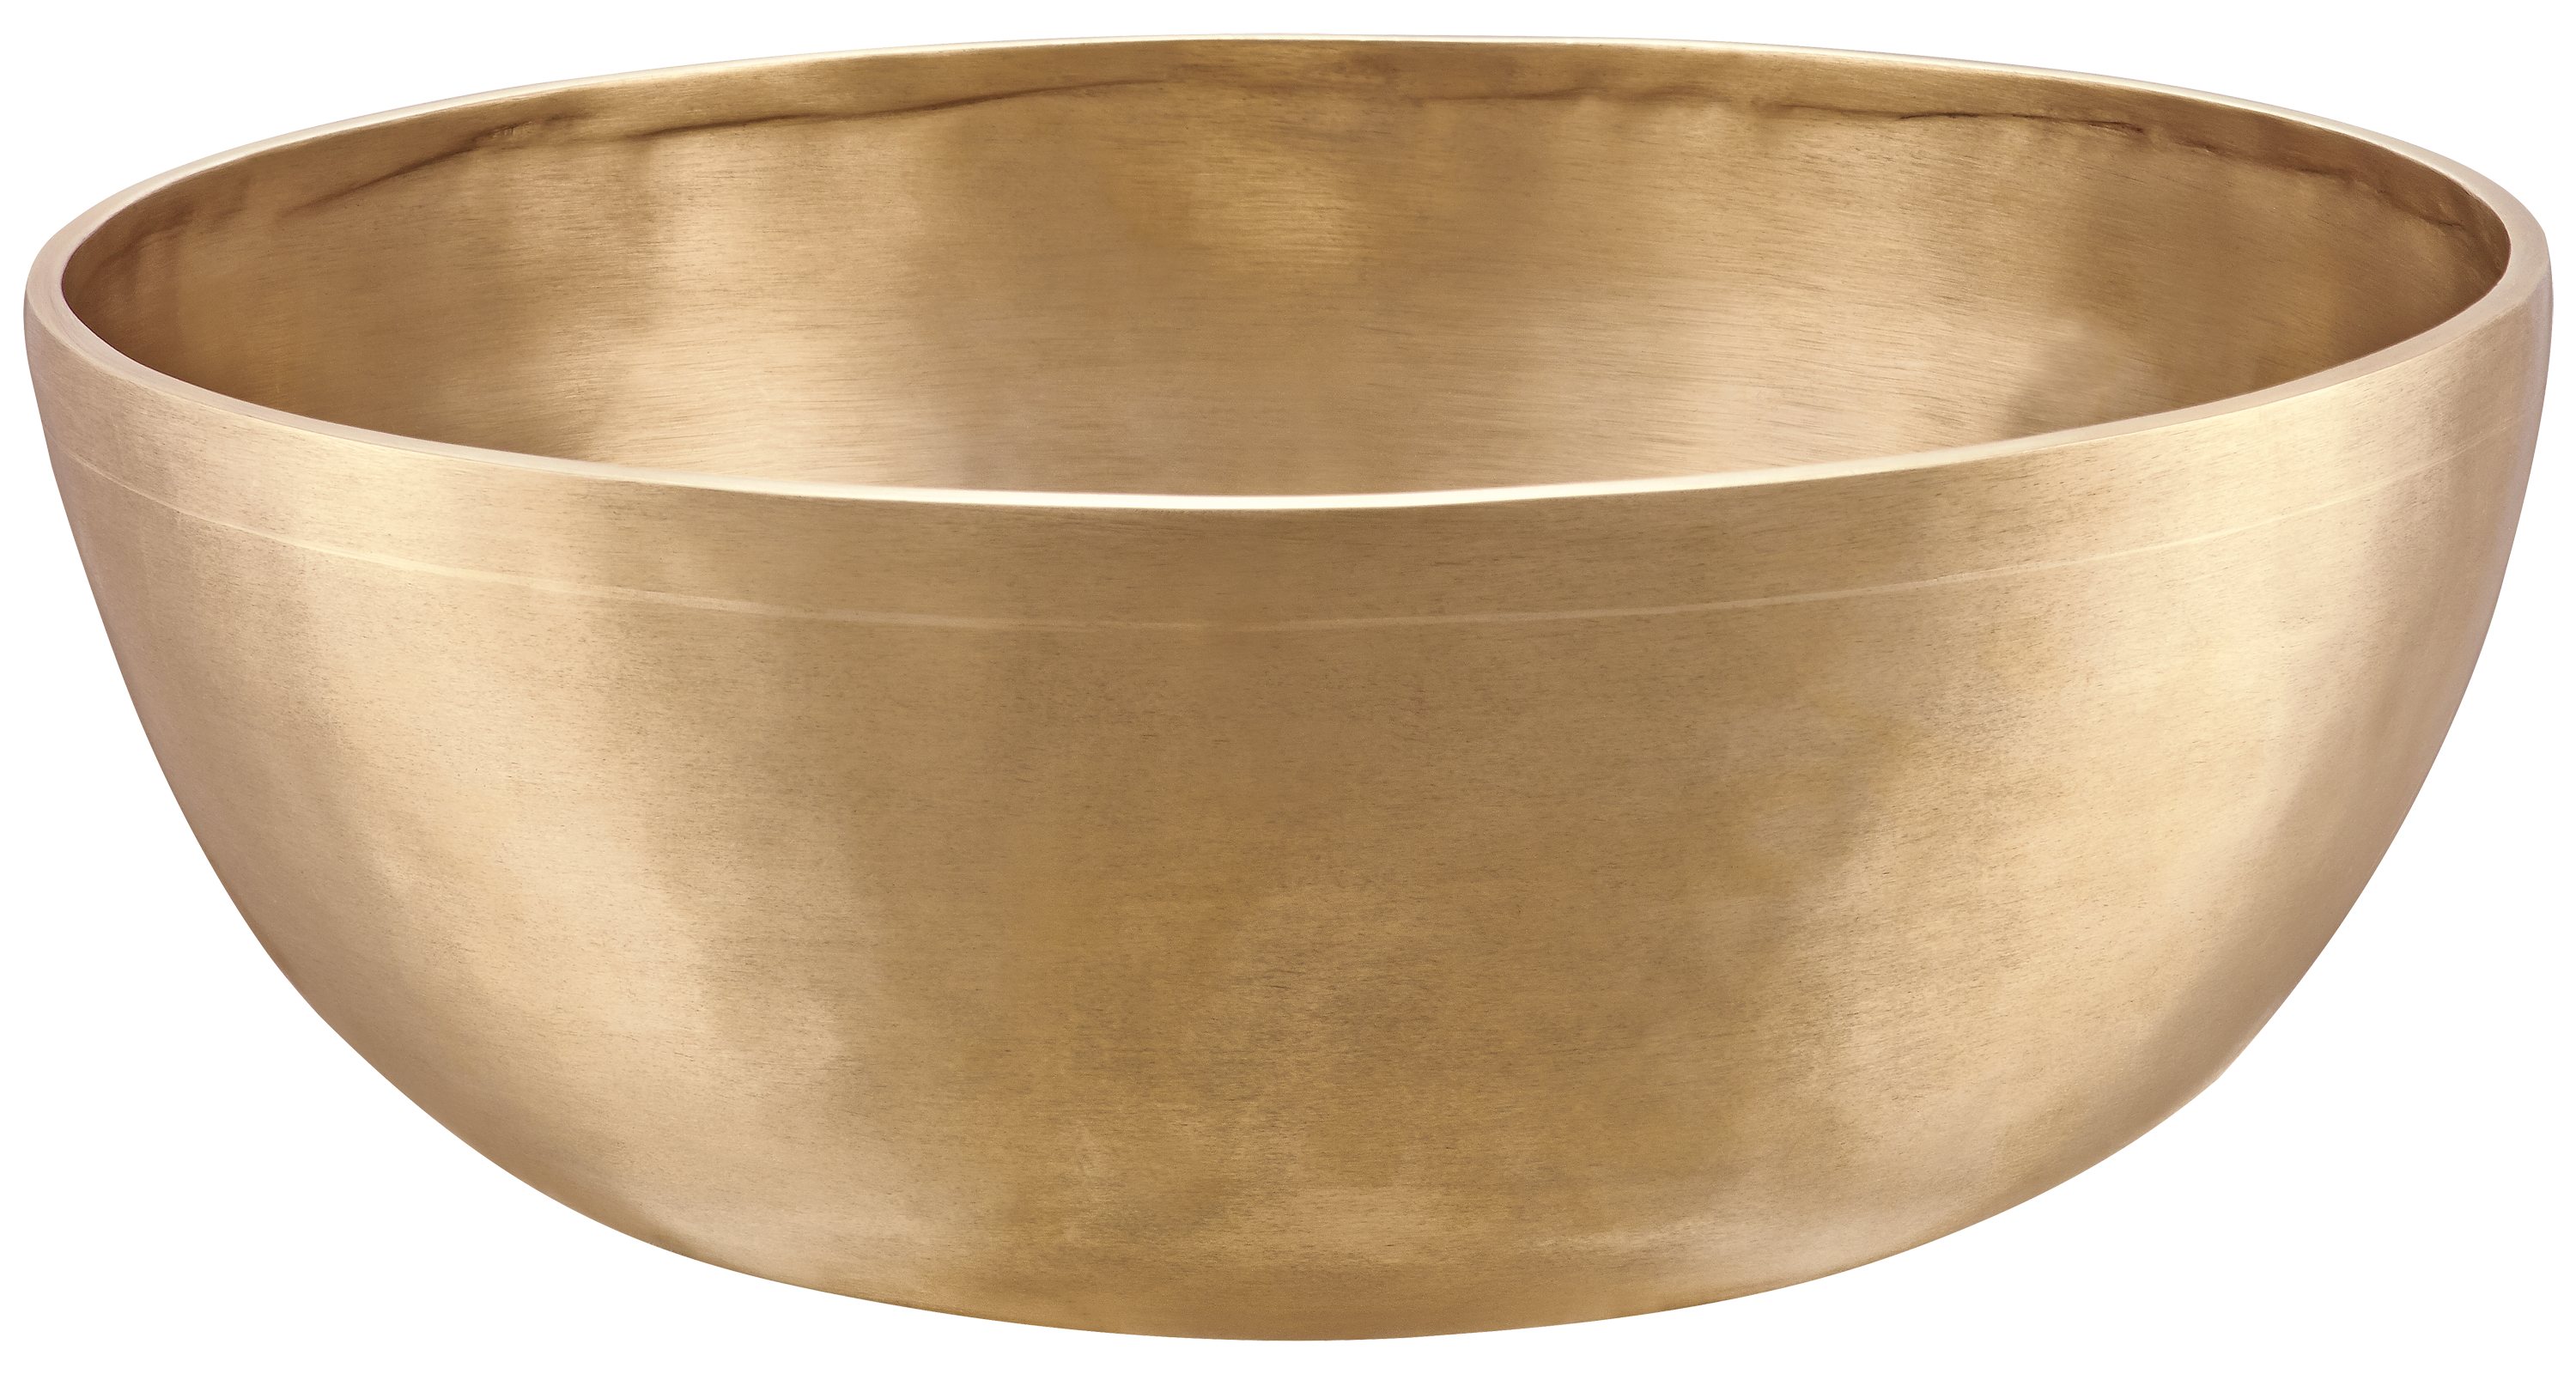 Singing bowl png. Meinl sonic energy collection